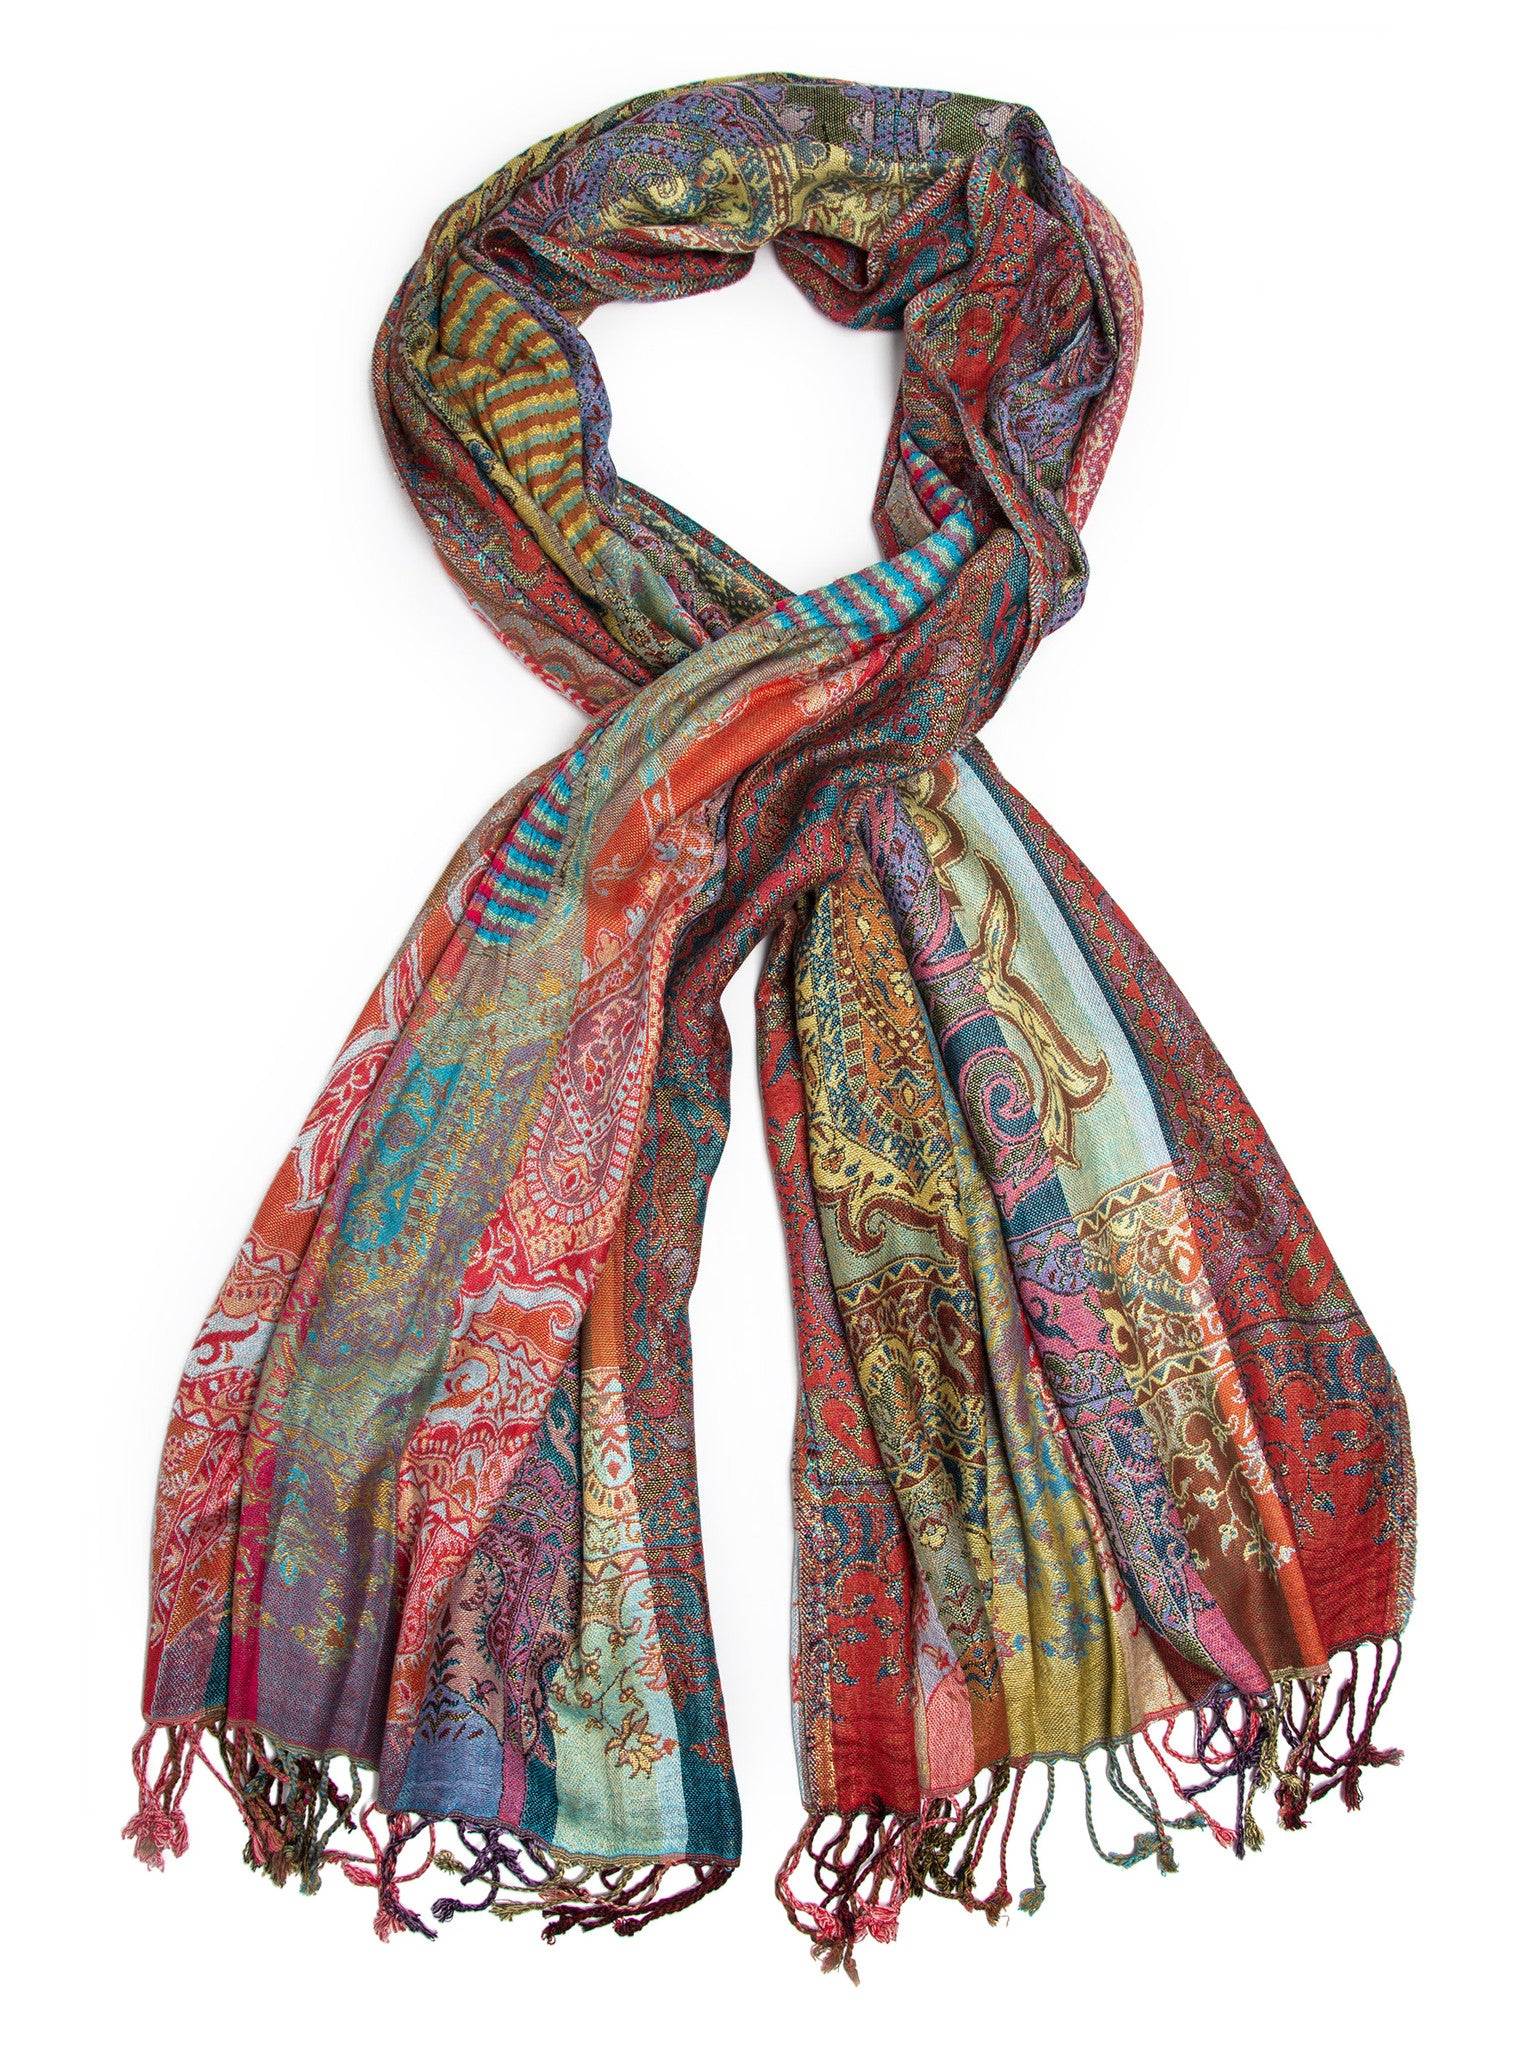 Scarves - Jivala Scarf, Woven Reversible Striped Pashmina Scarf, hand made in India -(Festival / One Size) Bohomonde  - 1